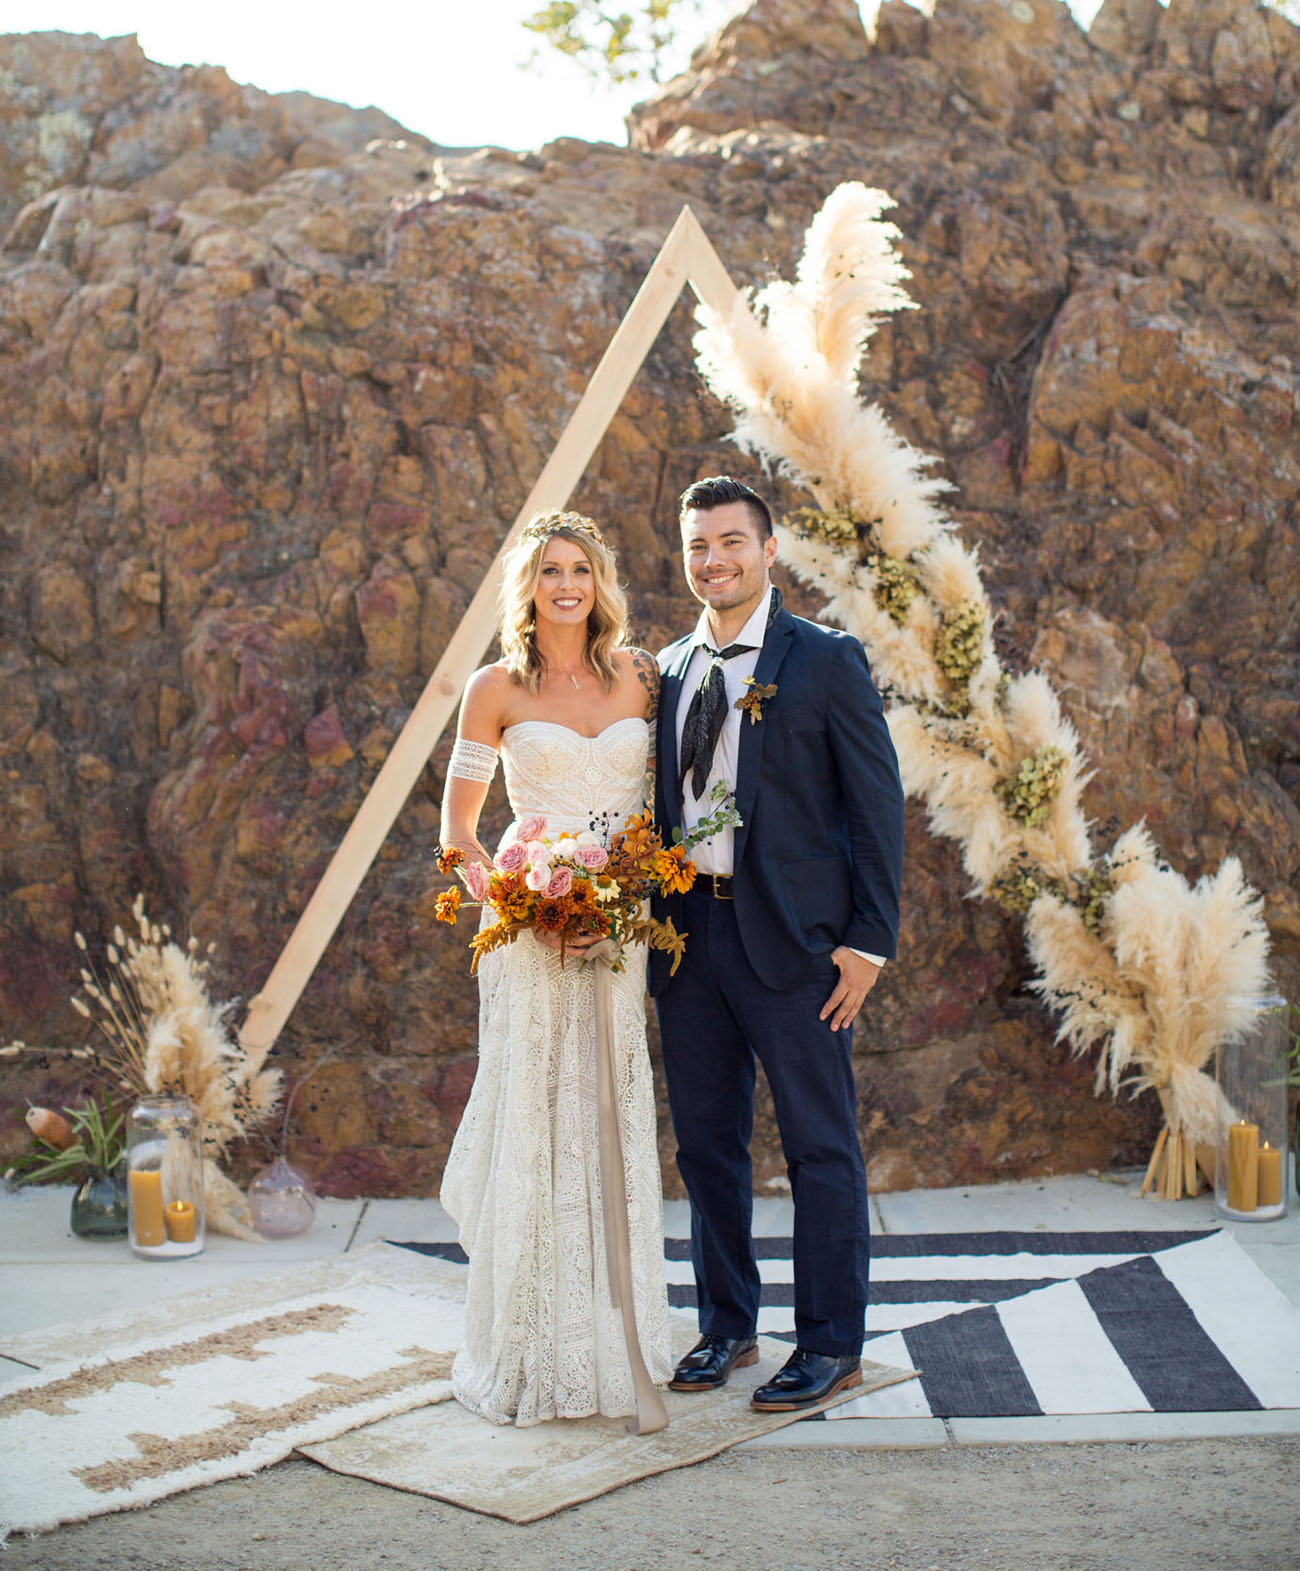 This bold wedding shoot is a boho one, with edgy and trendy touches and bright colors